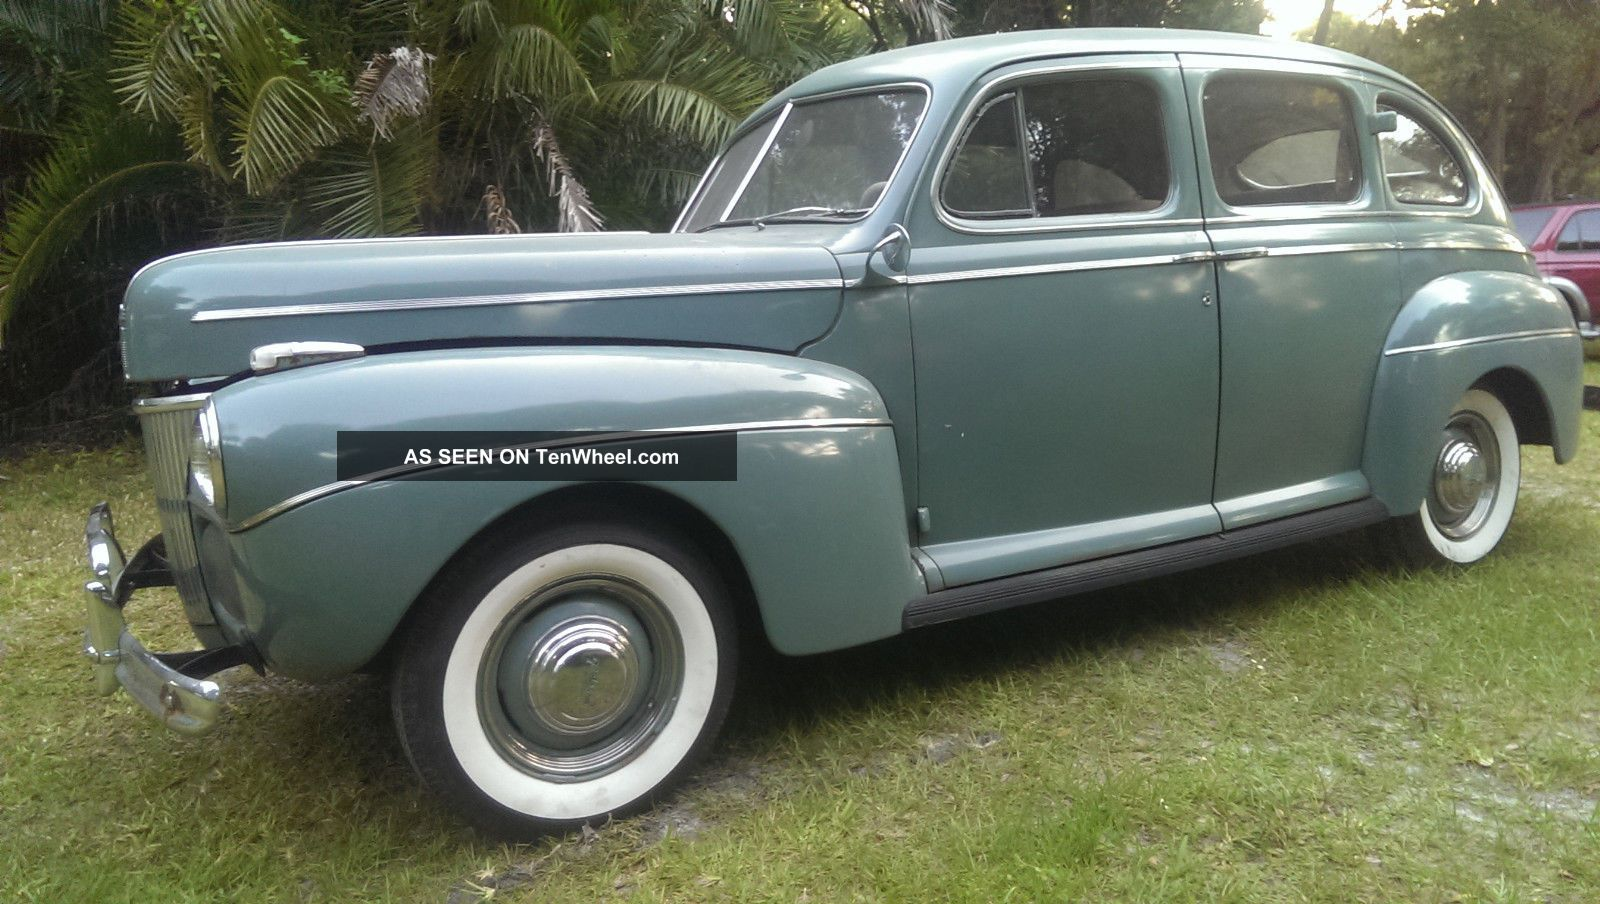 1941 ford deluxe 4 door sedan like sitting in a time capsule